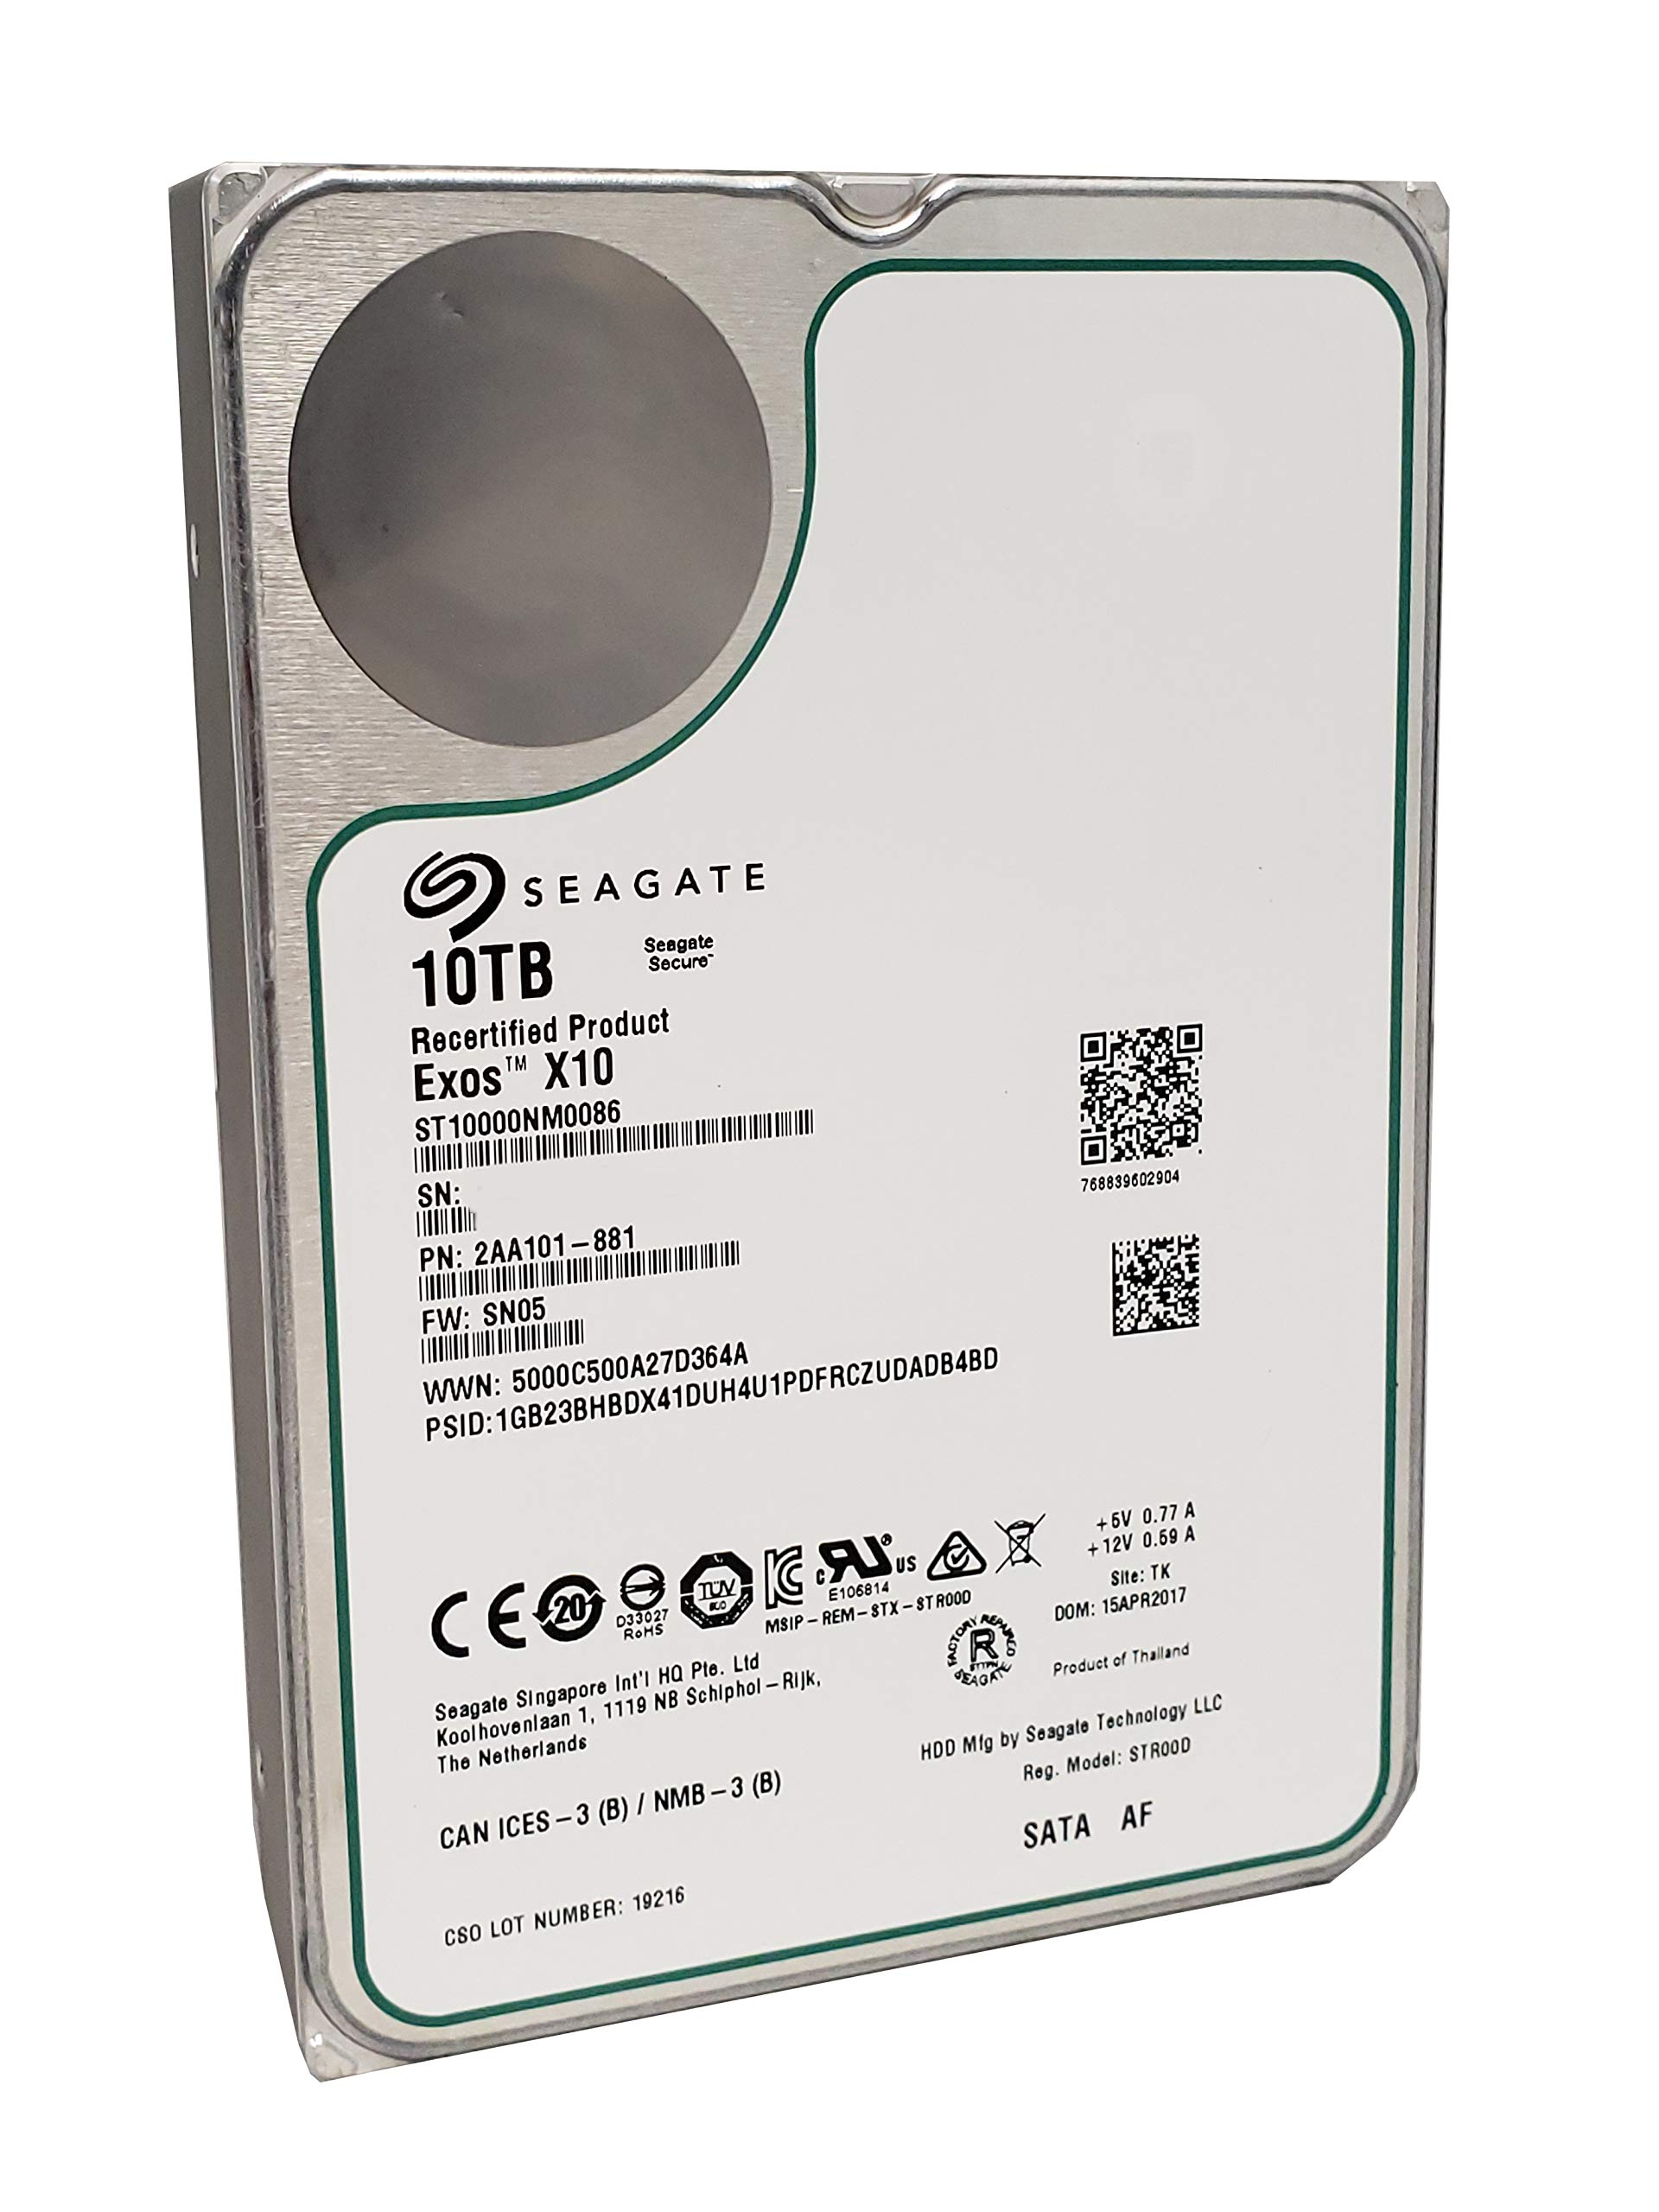 Seagate Exos X10 HDD | ST10000NM0086 | 10TB 7200RPM | SATA 6Gb/s 256MB Cache 3.5-Inch | 512e | Enterprise Internal Hard Disk Drive (Renewed) by Seagate (Image #1)